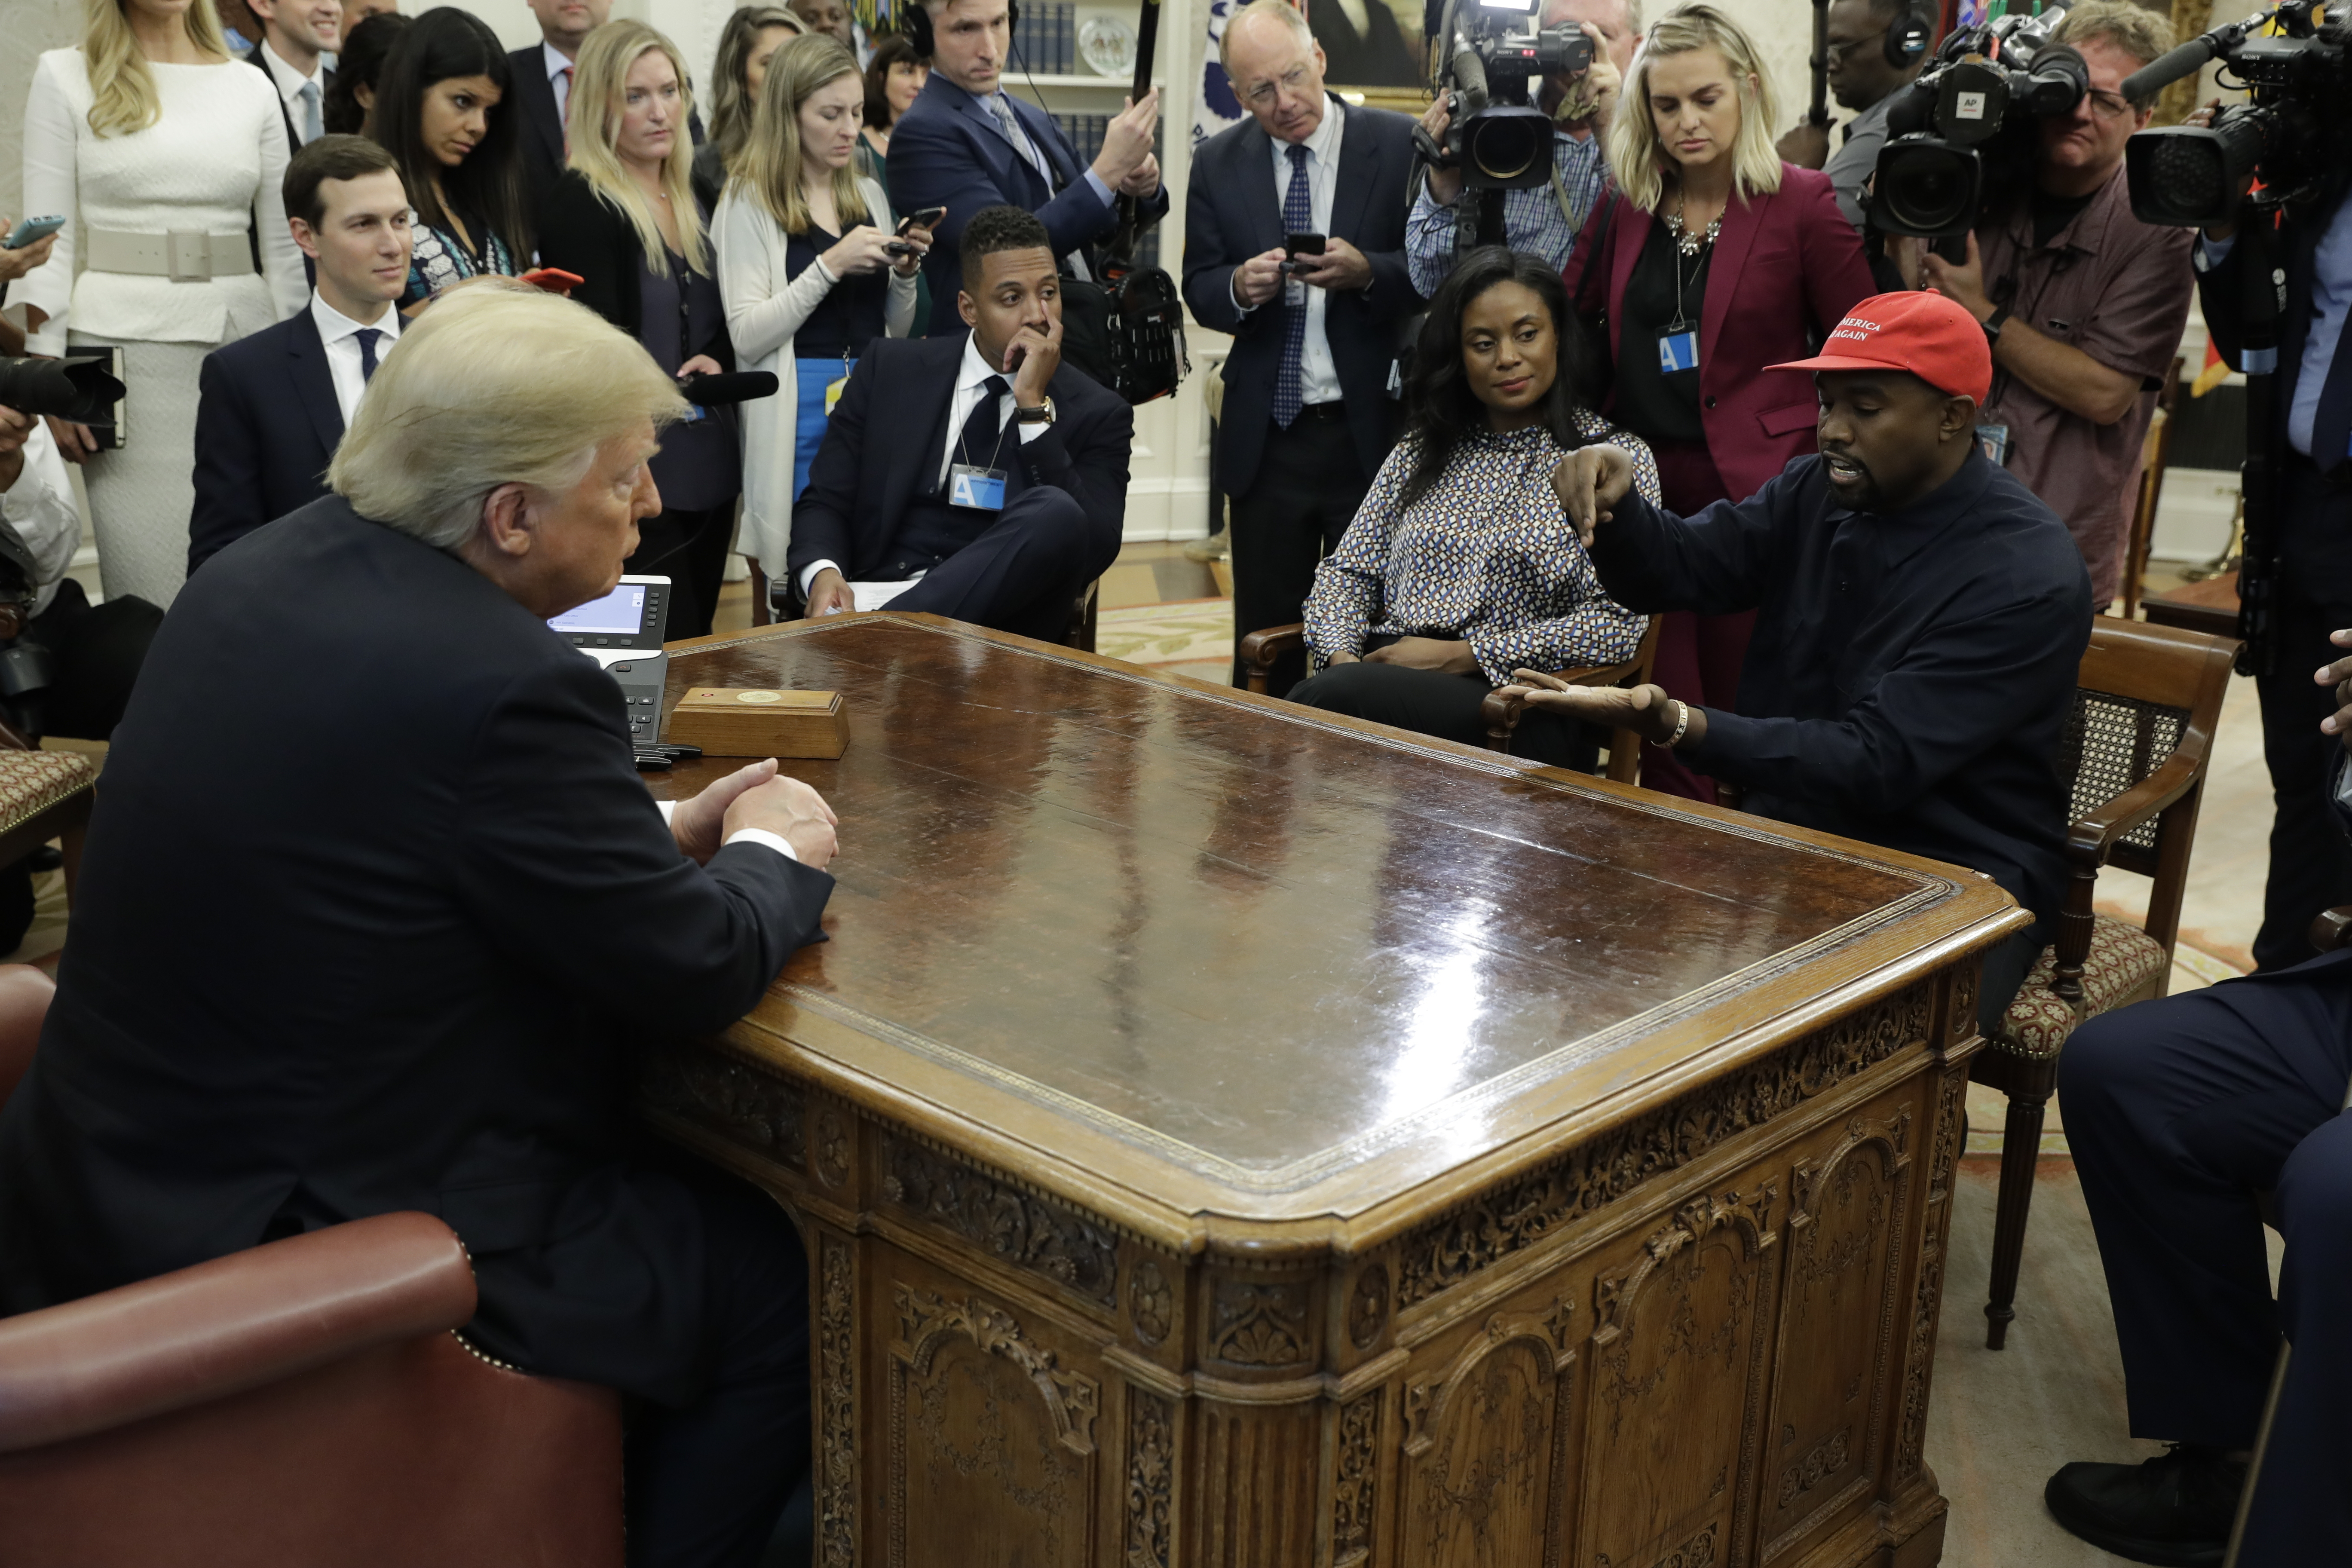 Rapper Kanye West (R) speaks to President Donald Trump and others in the Oval Office of the White House, Oct. 11, 2018, in Washington.